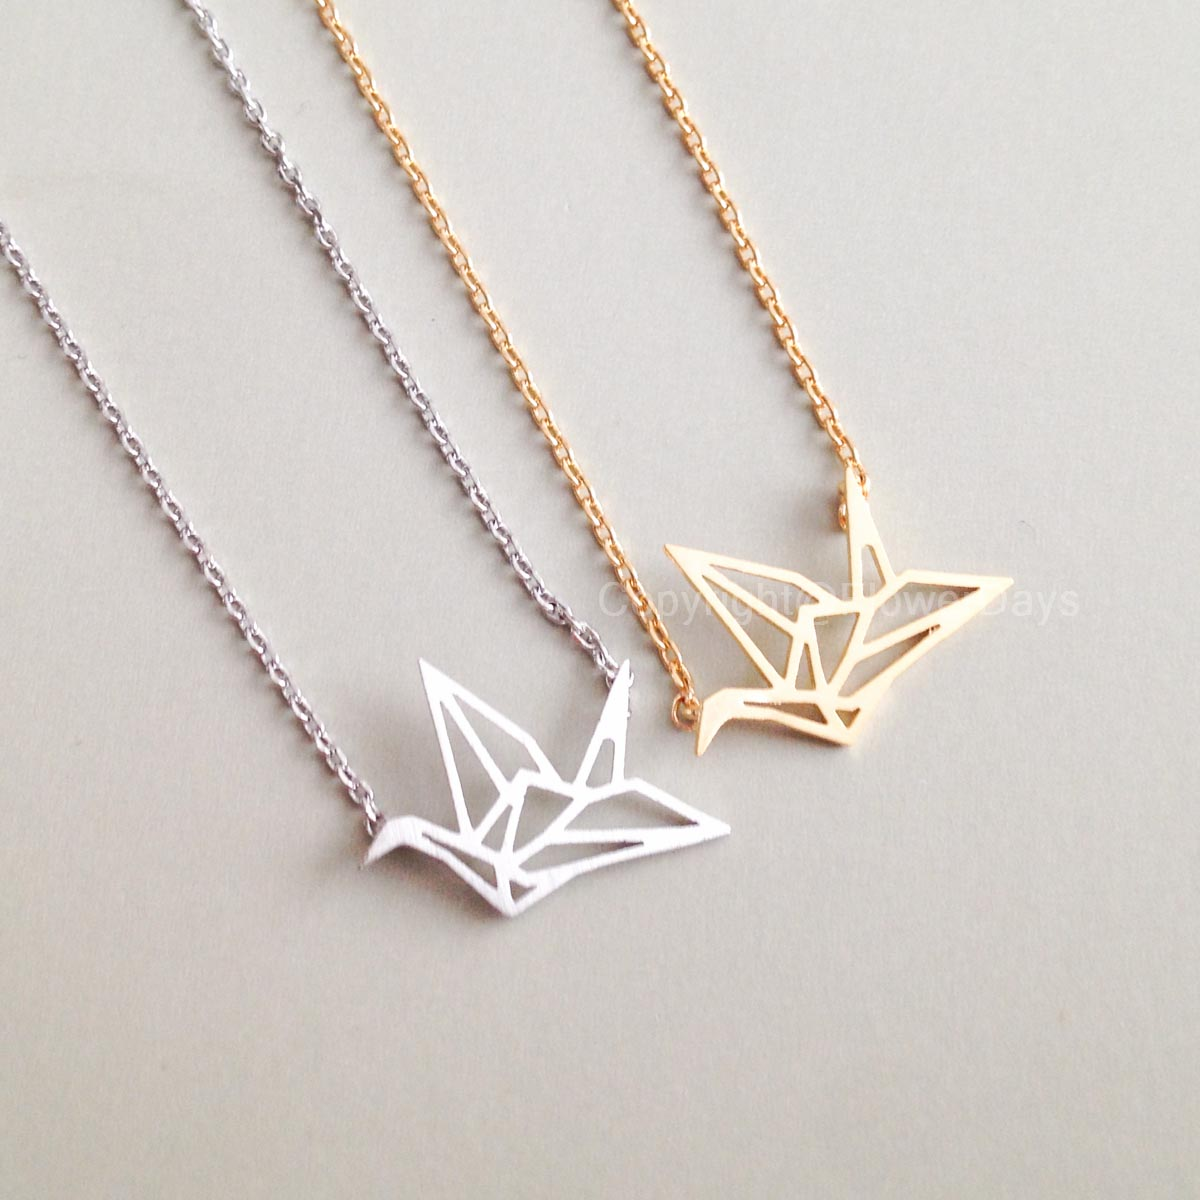 Origami Crane Necklace on Storenvy - photo#8